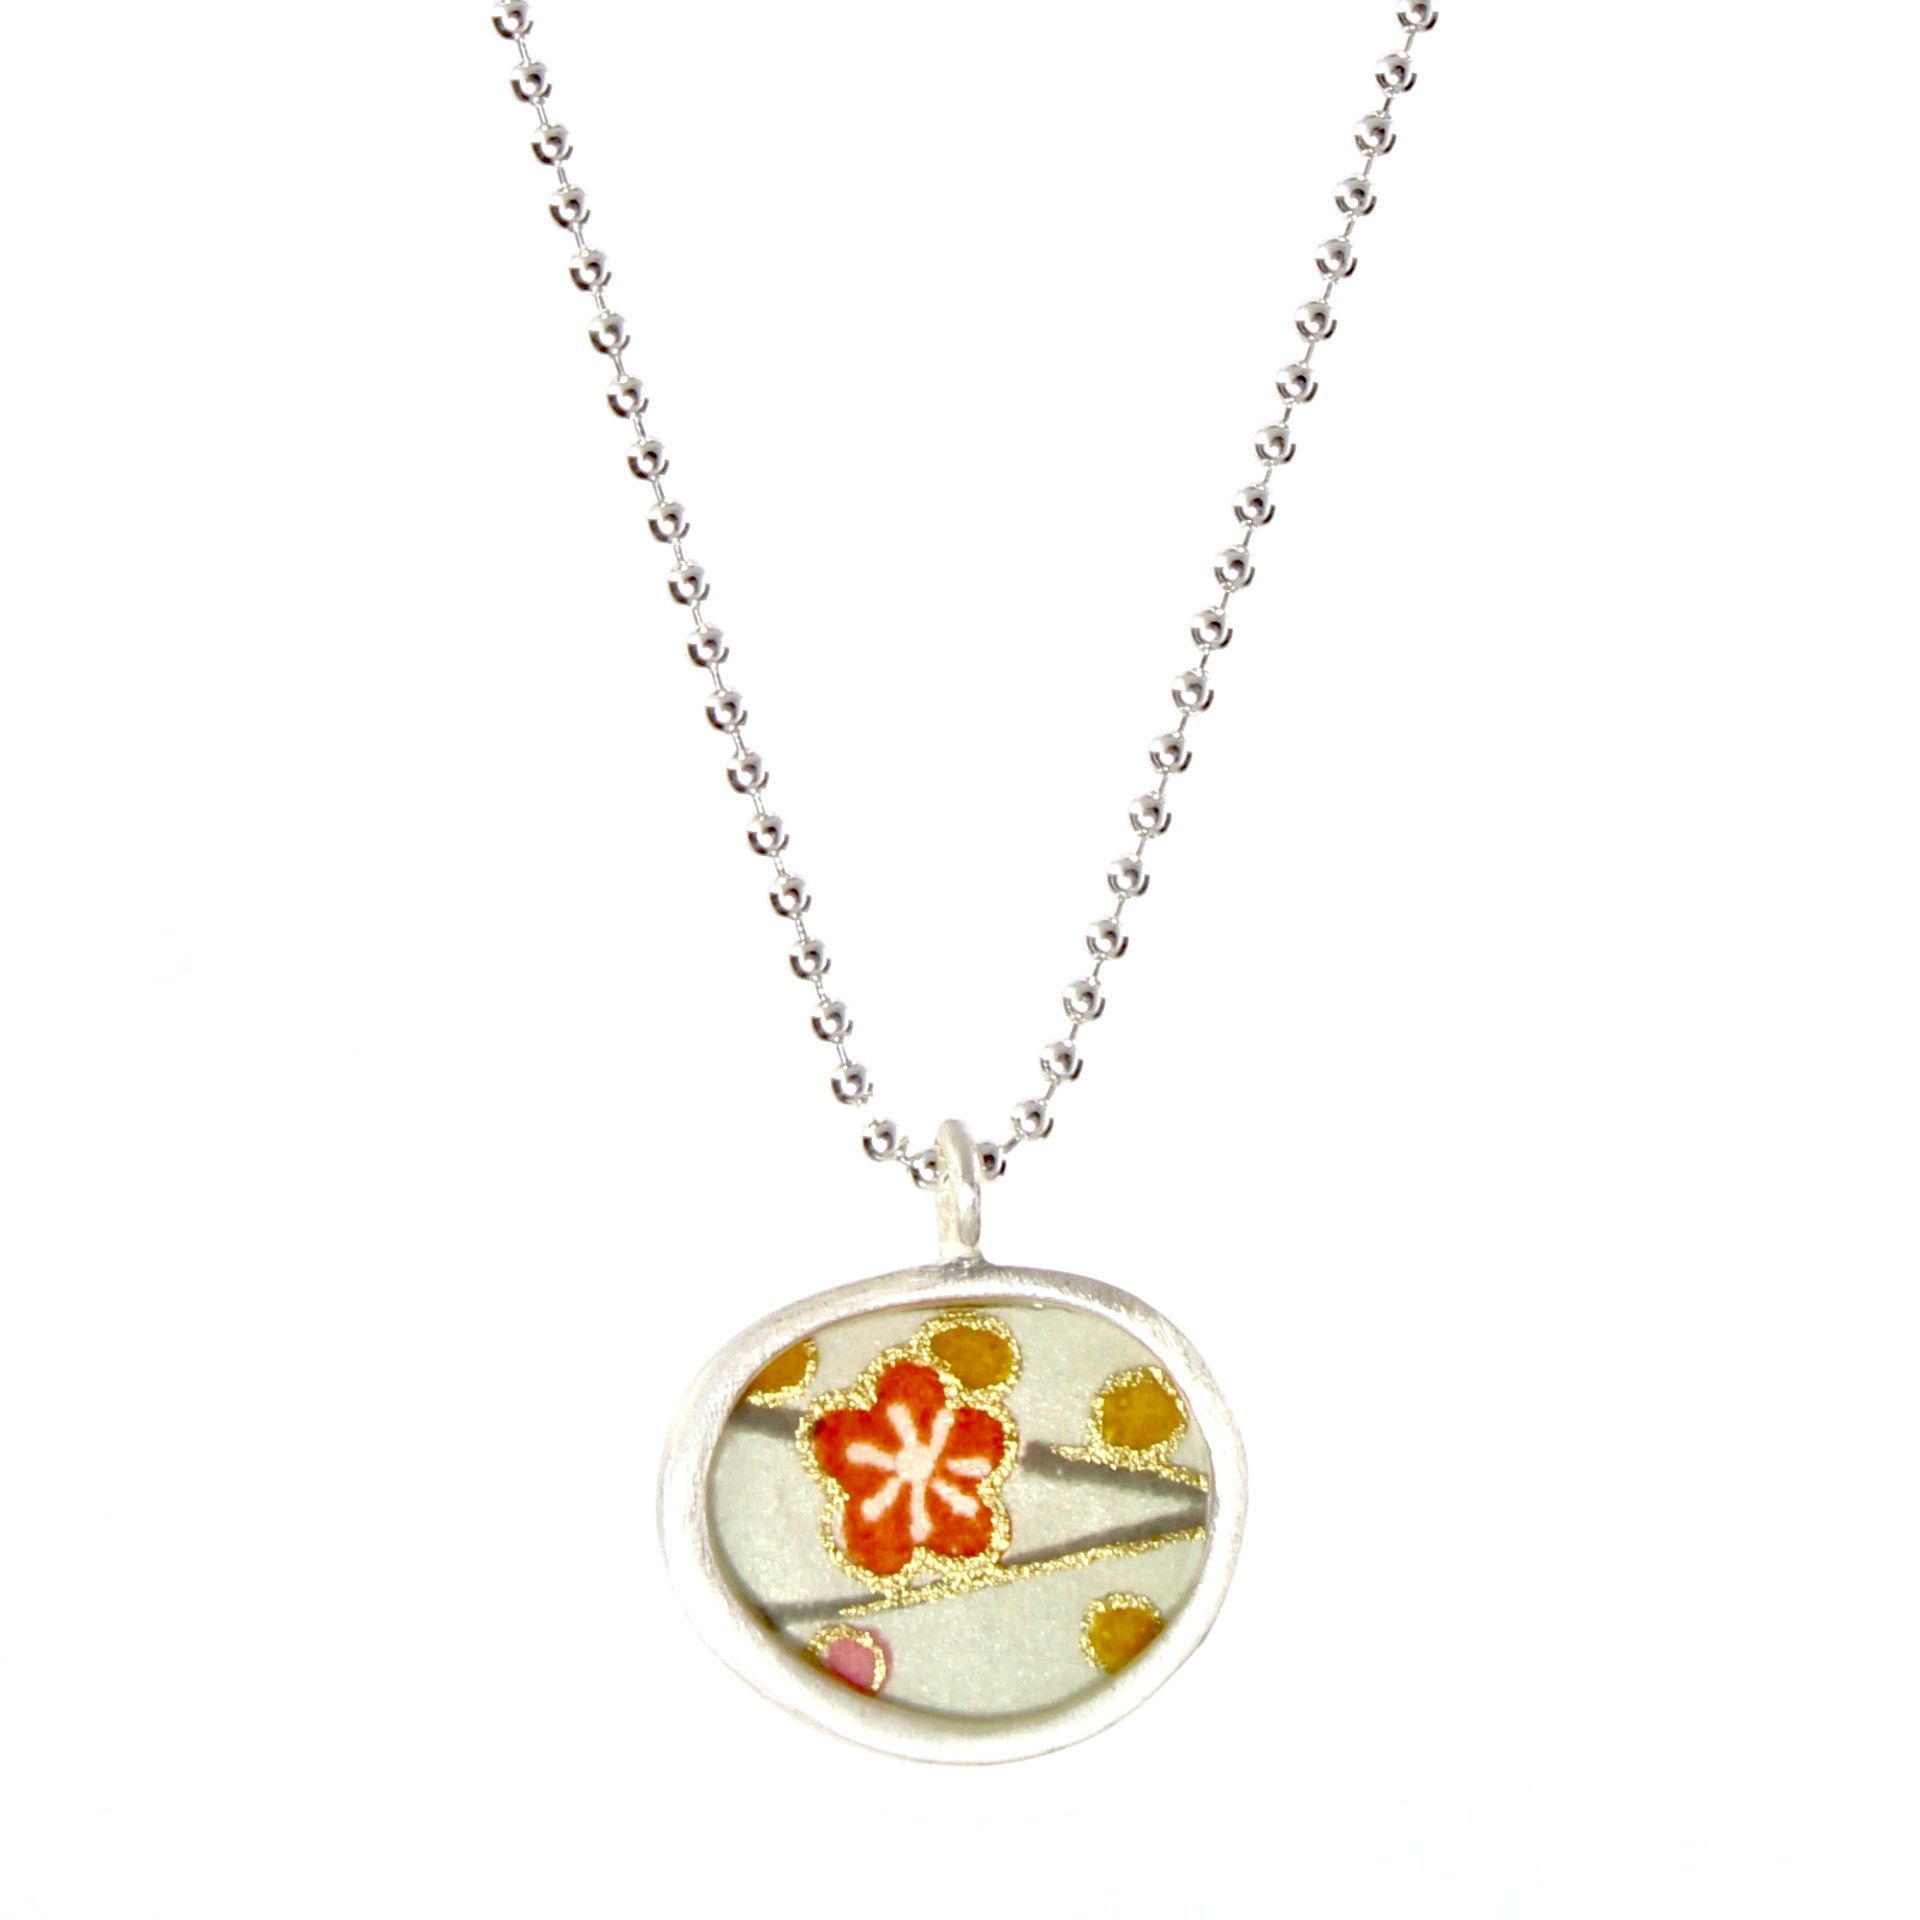 Beachstone necklace by susan fleming products pinterest products